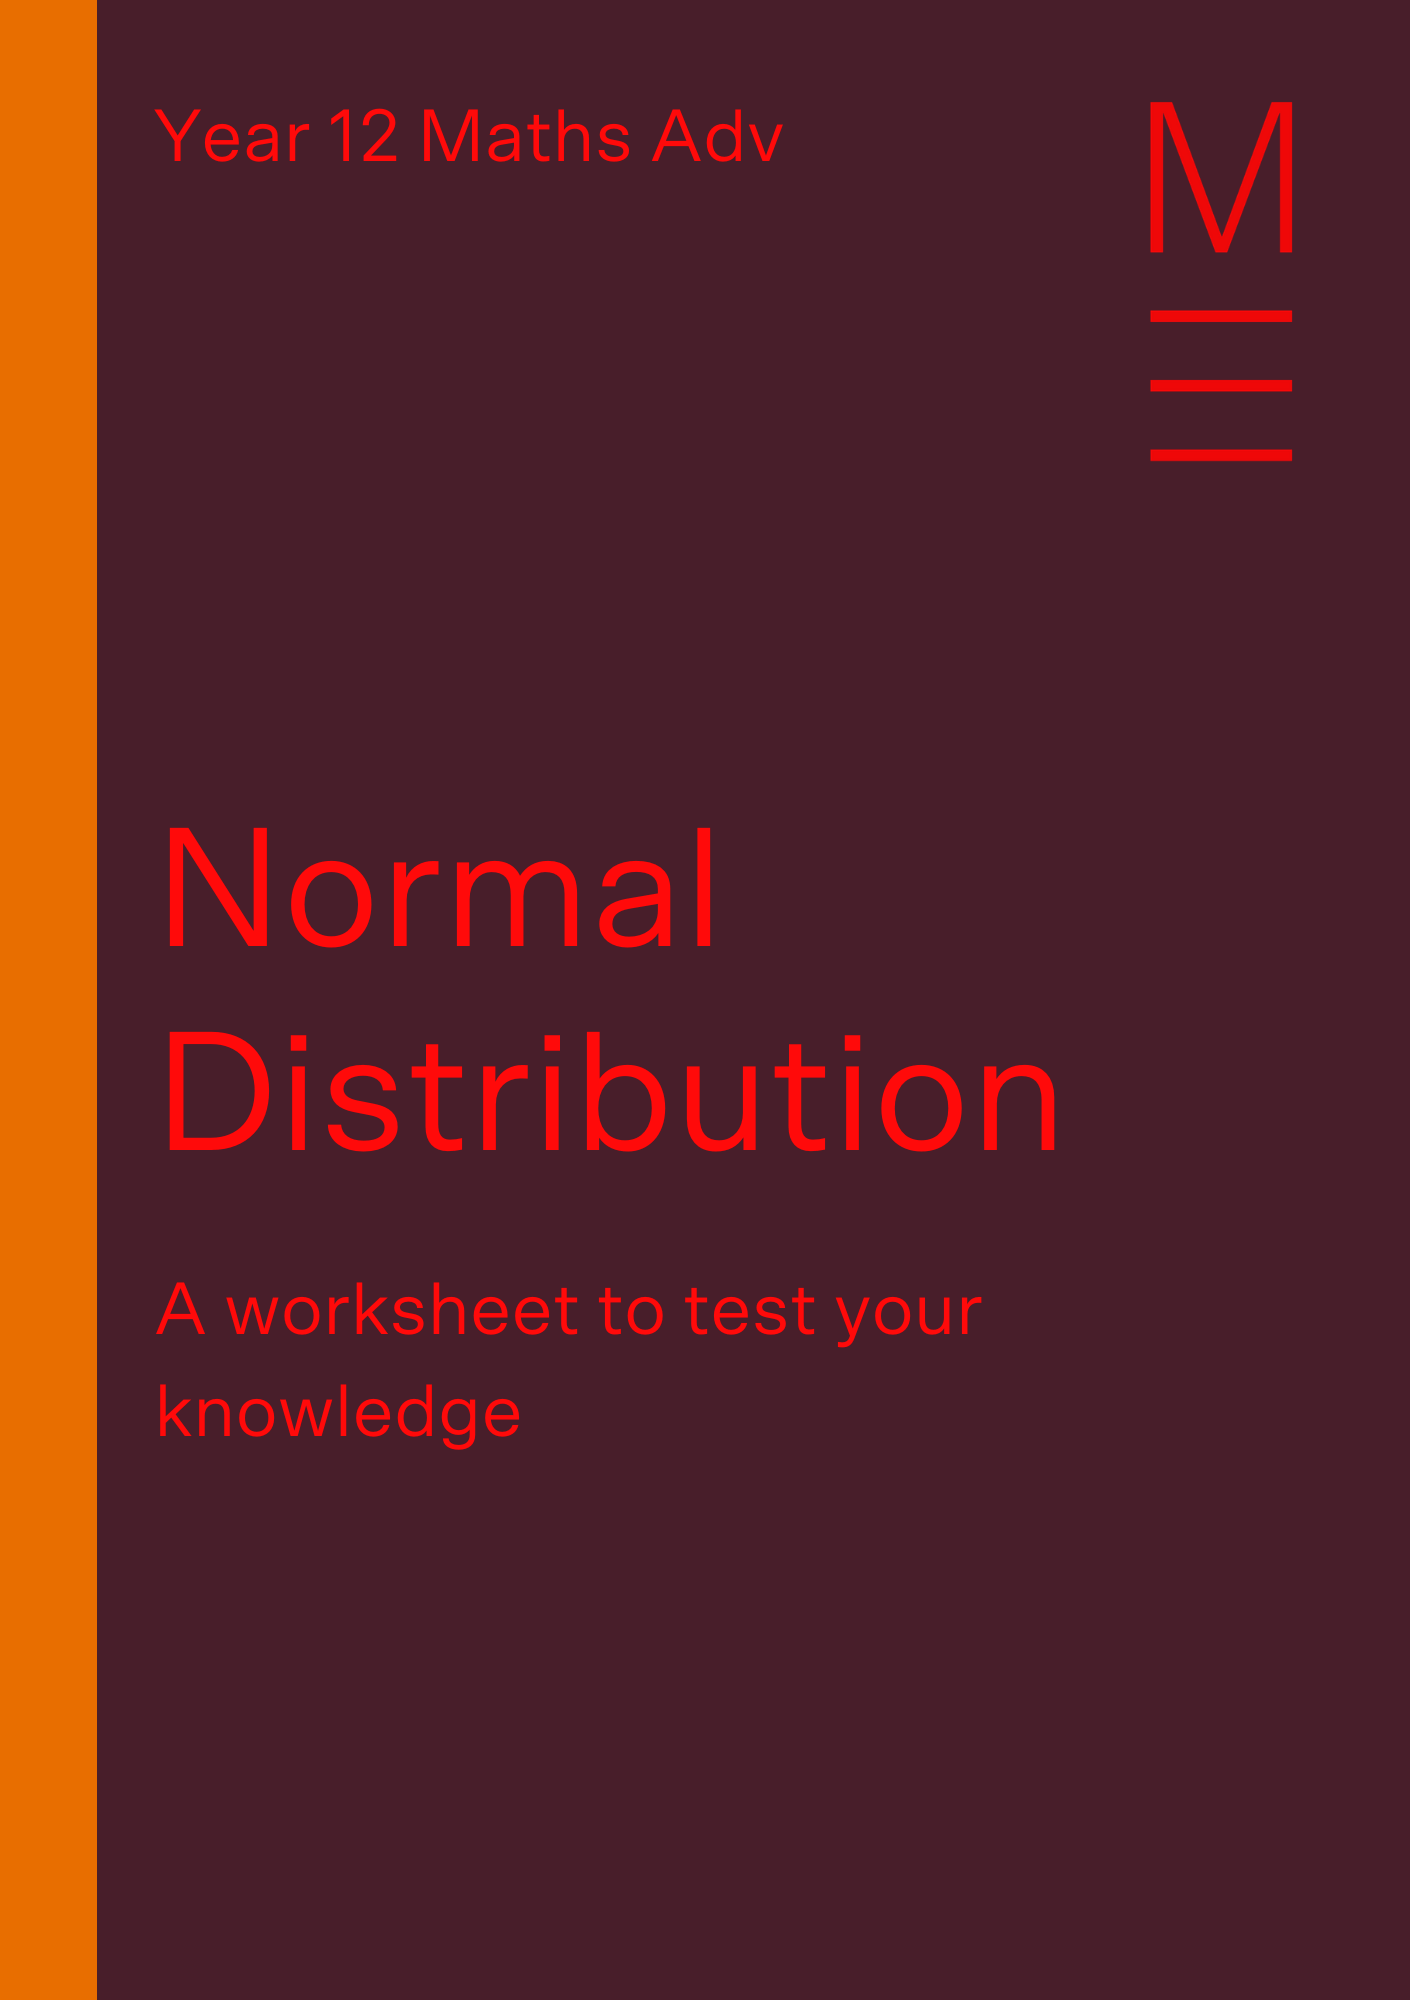 Part 5 Normal Distribution